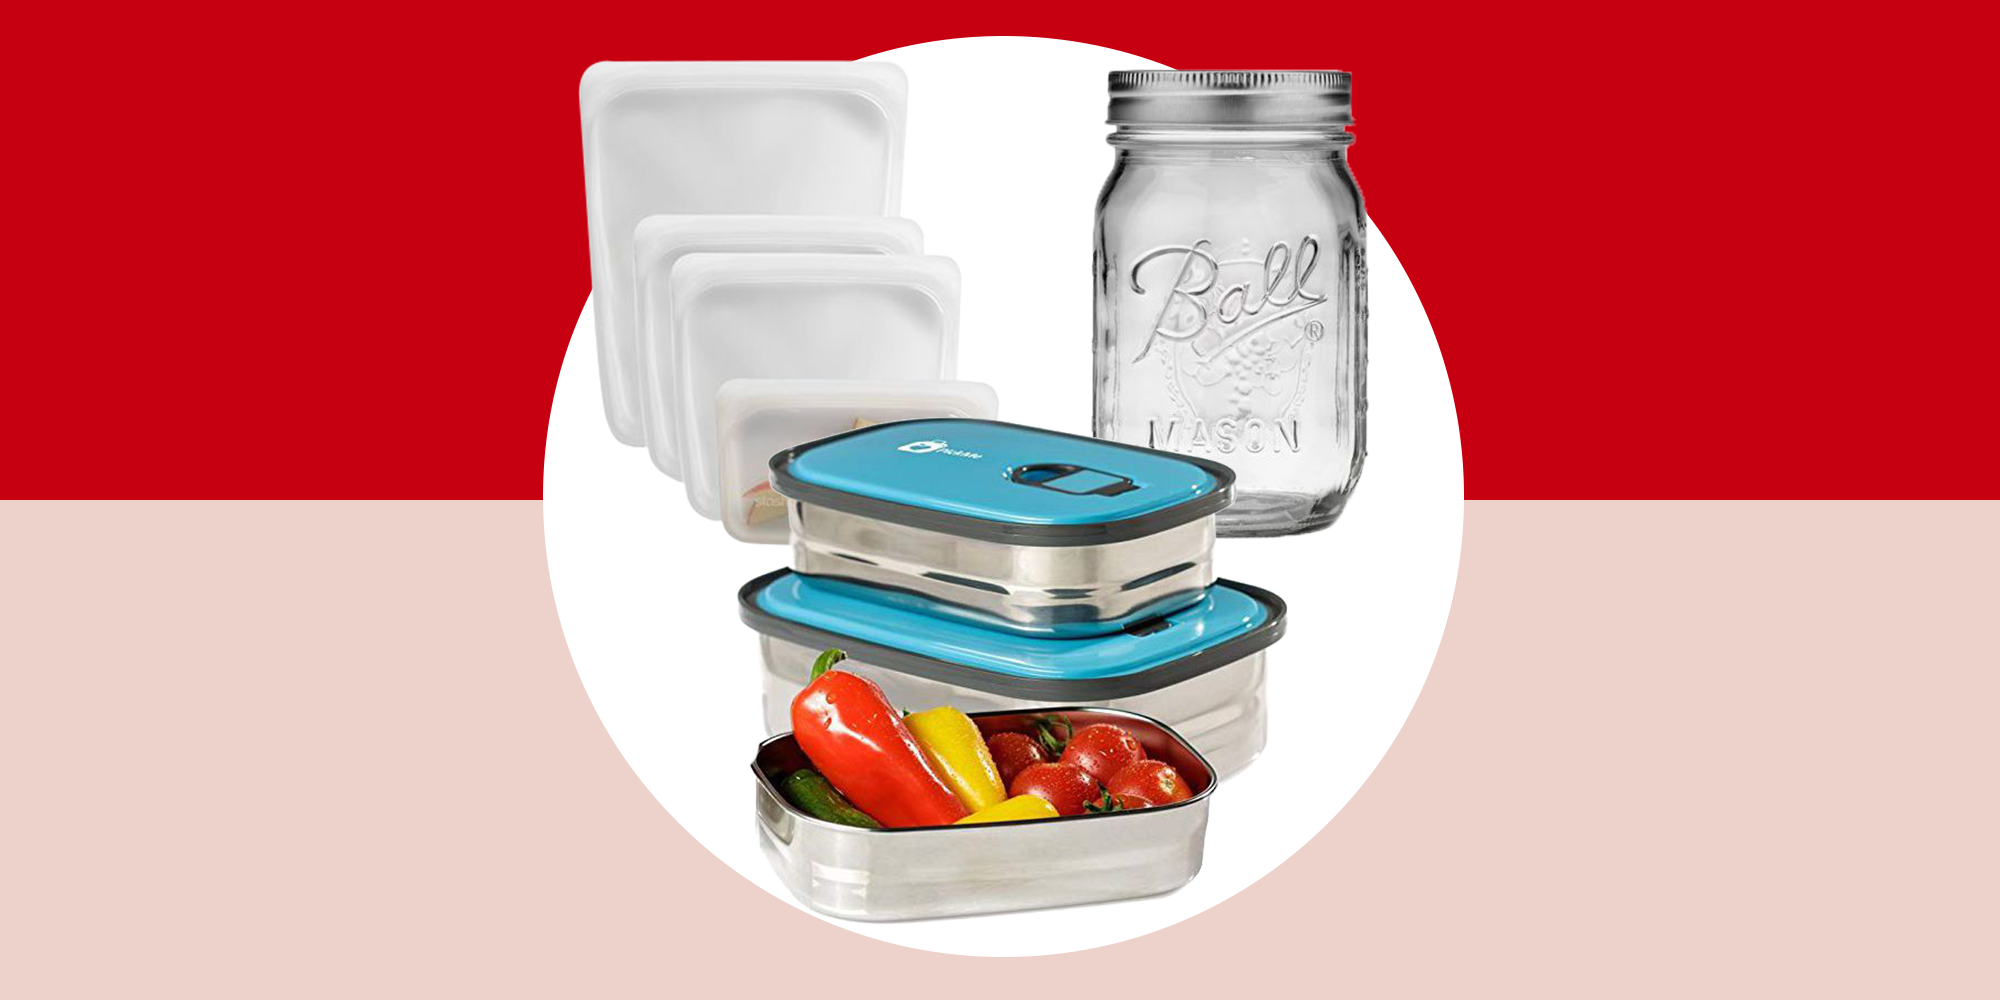 The Best Food Storage Containers For All Your Meal-Prep Needs